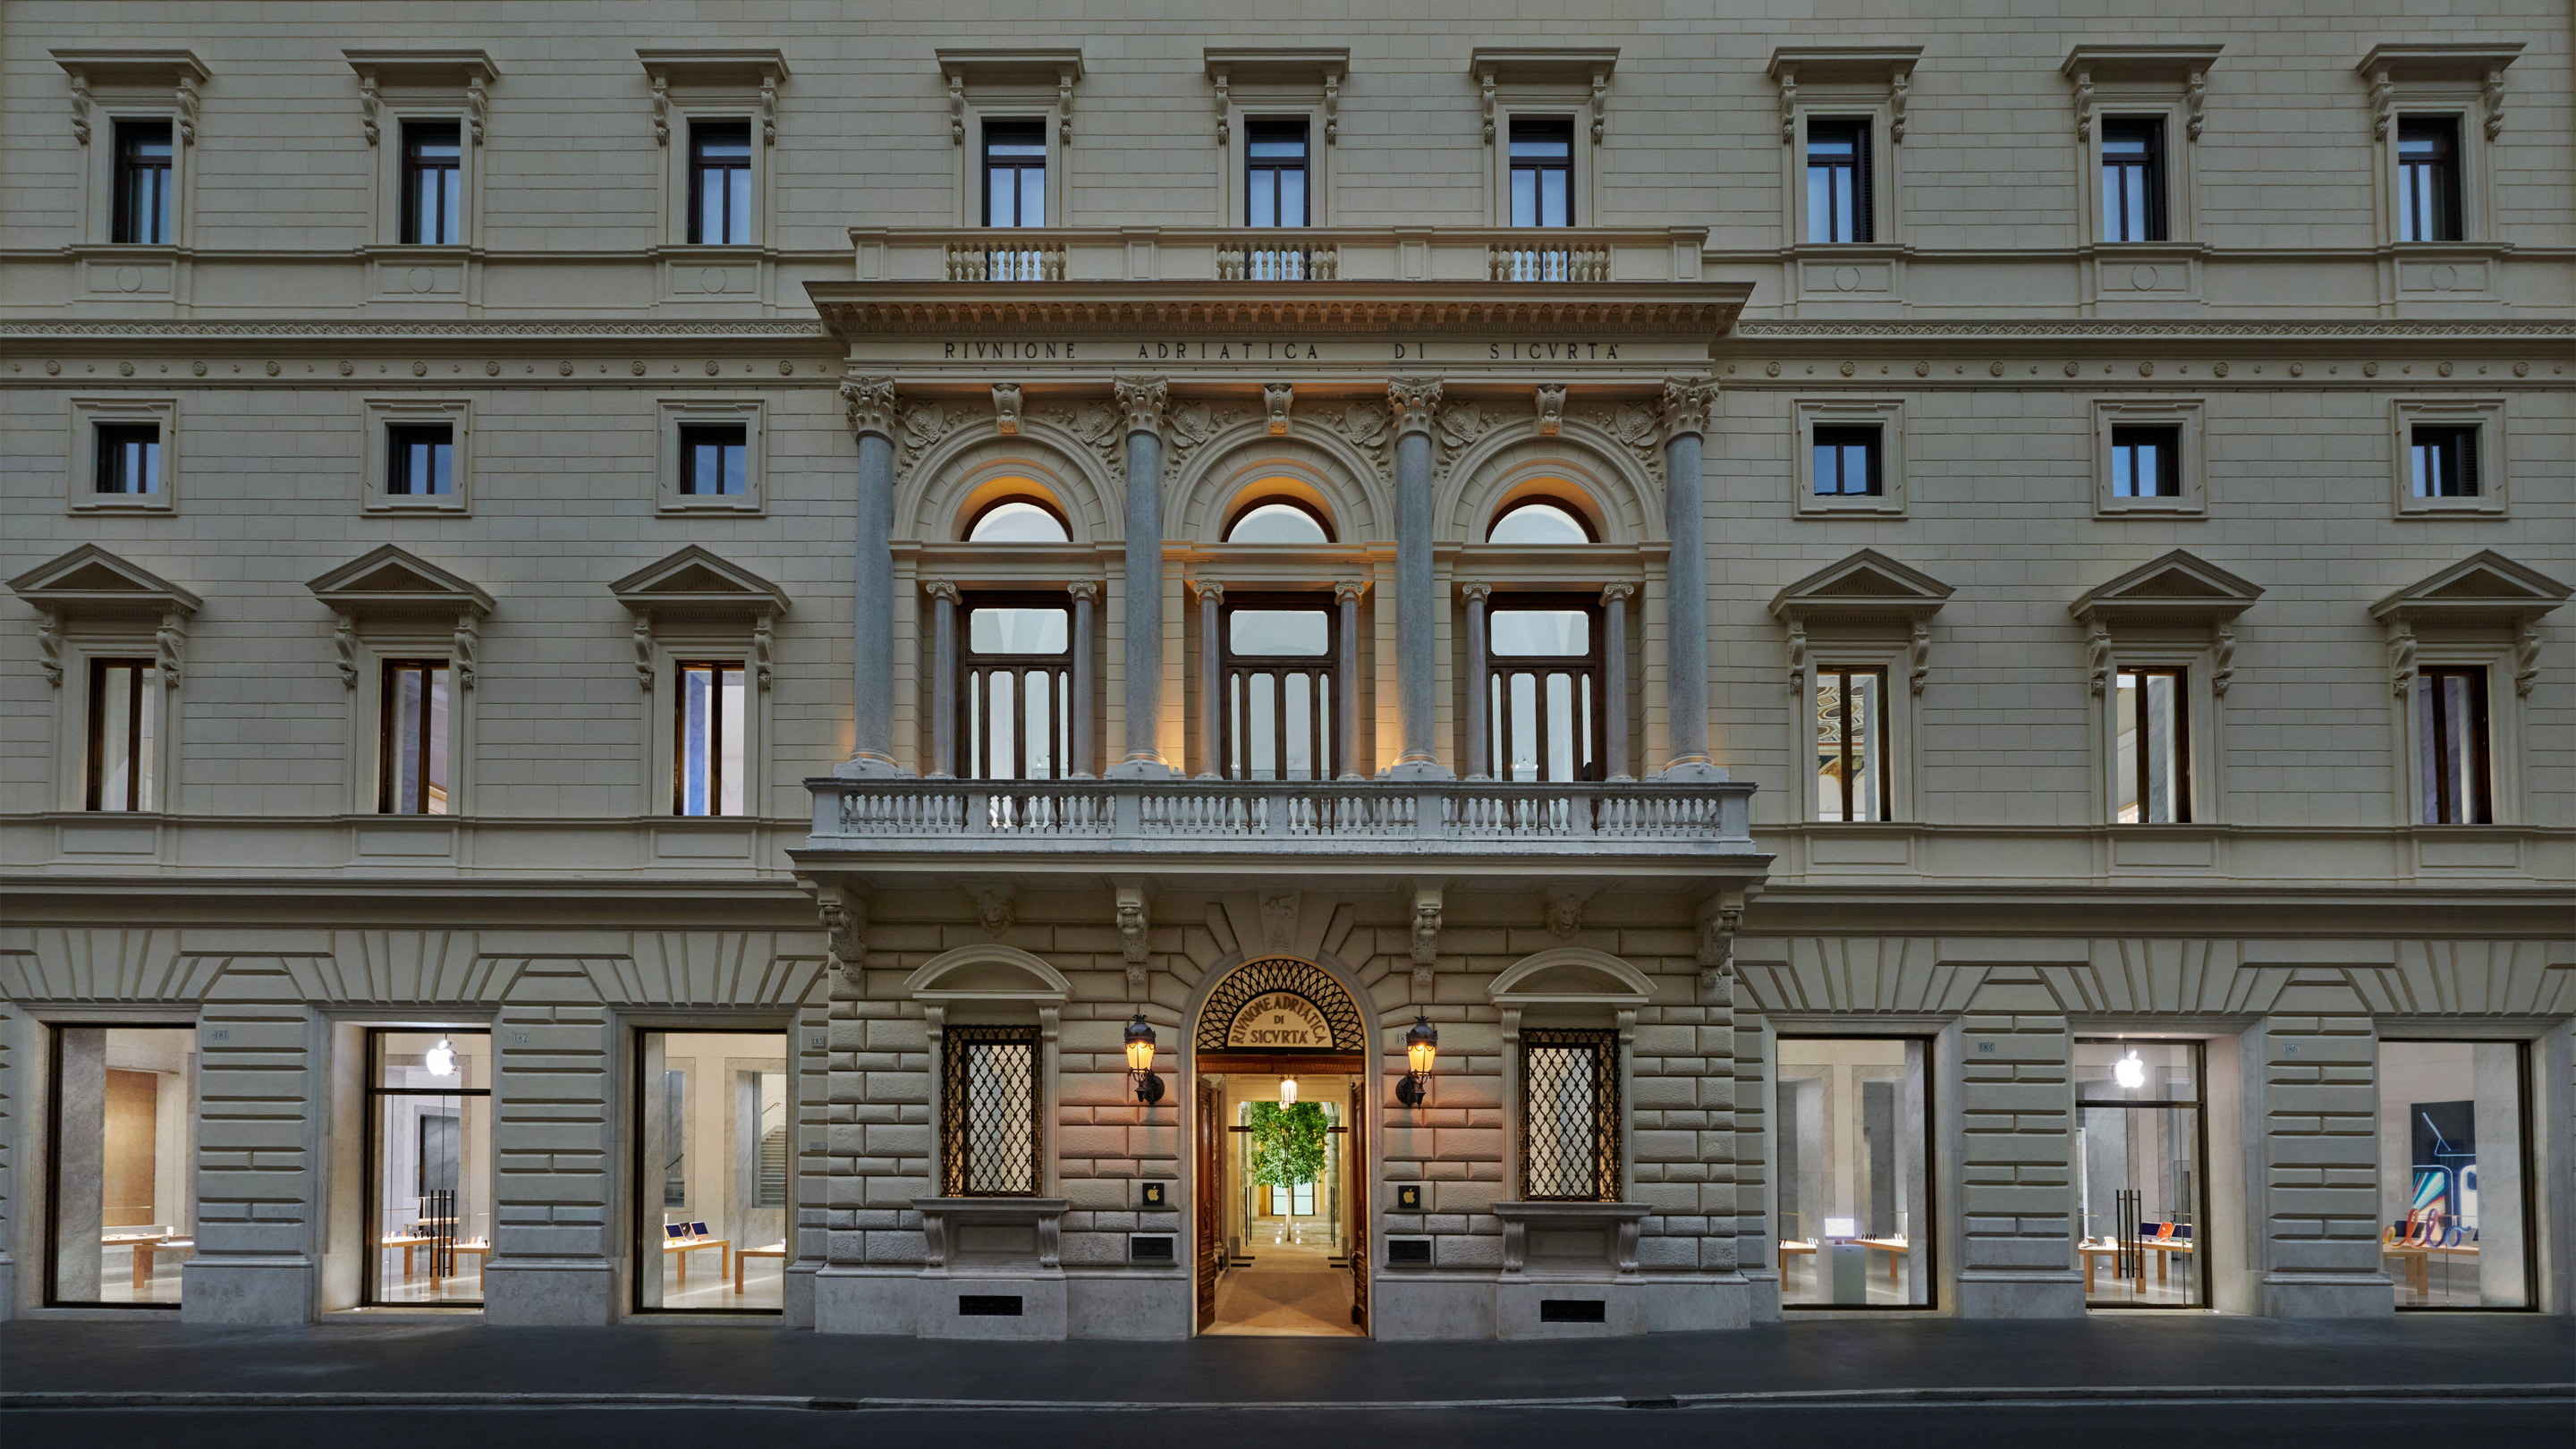 During the renovation project, Apple Via Del Corso's original eye-catching facade was painstakingly restored